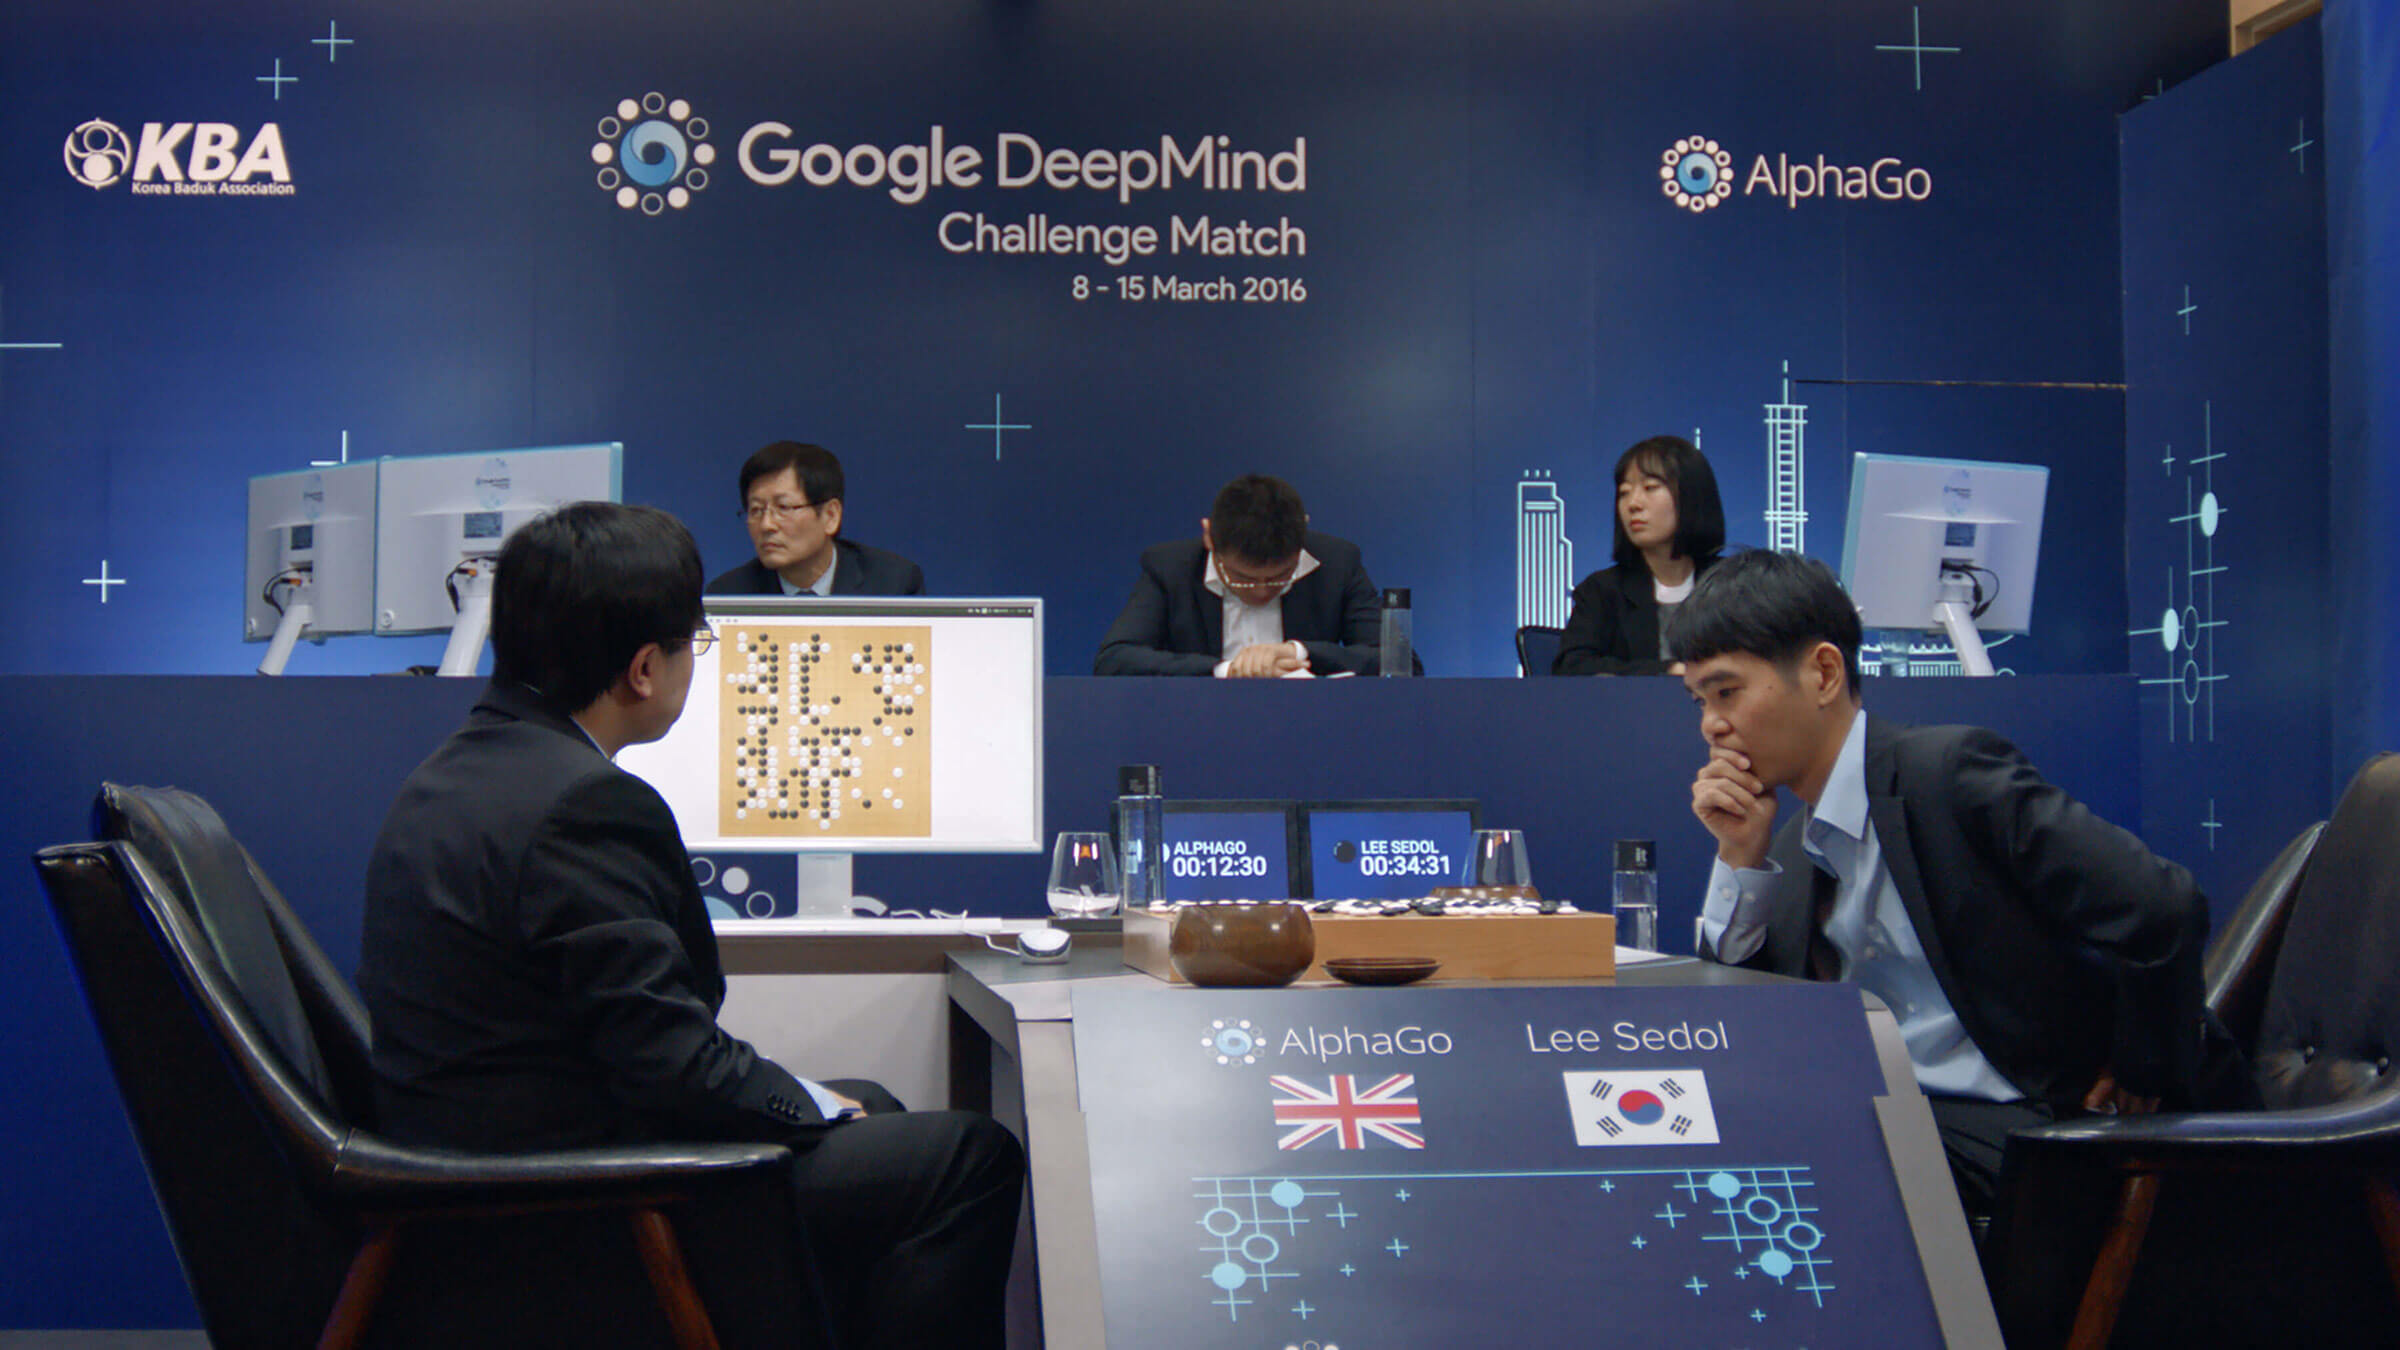 Deepmind's AlphaGo: The Computer Program That Beat the Best Go Player in History